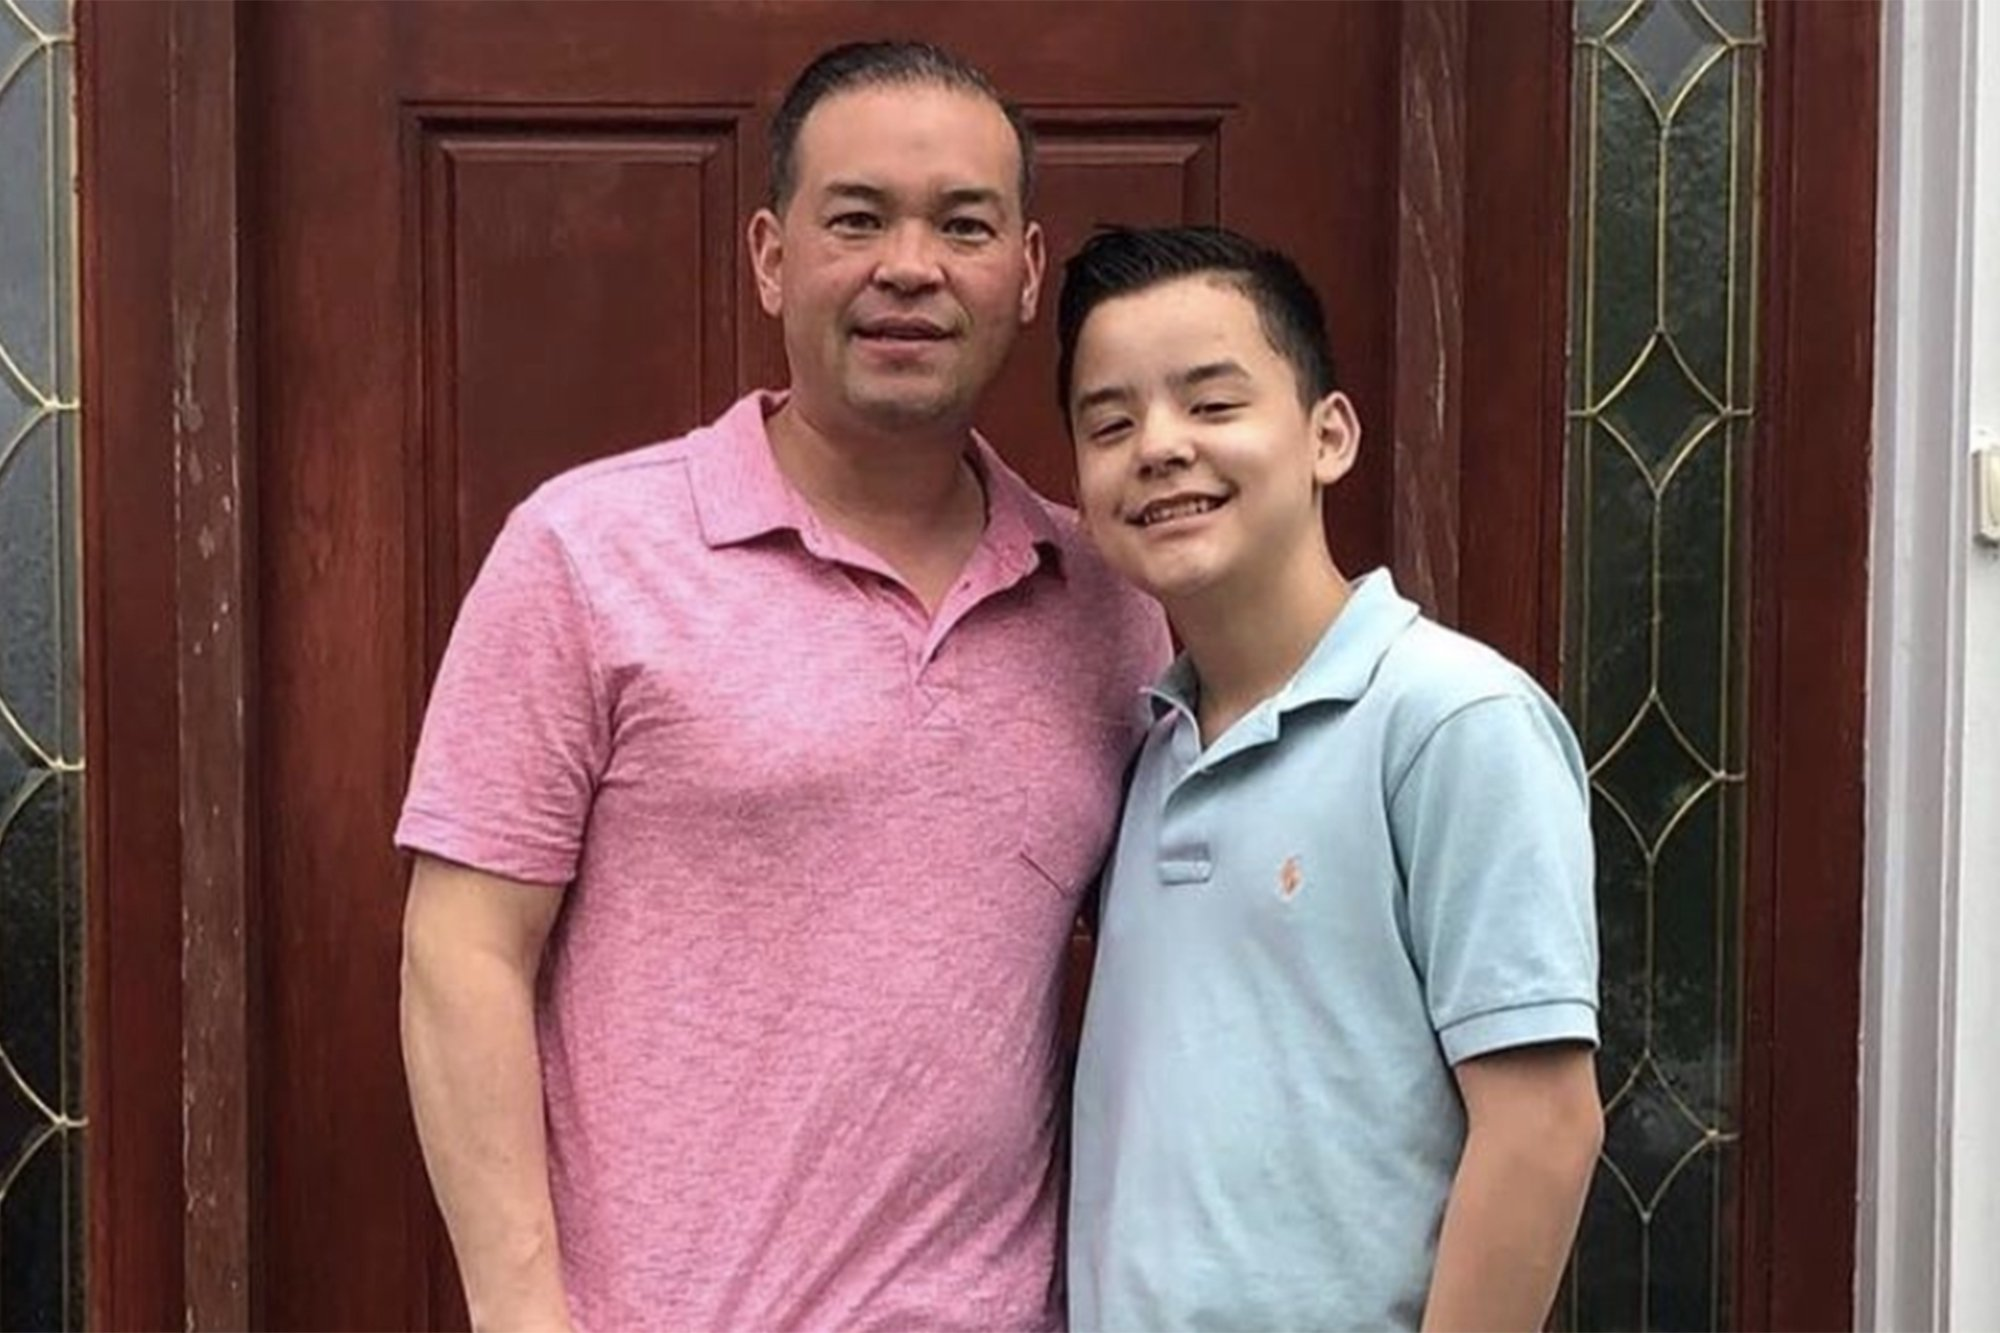 Jon Gosselin Details What Really Happened When 'Manic' Son Collin Accused Him Of Child Abuse!